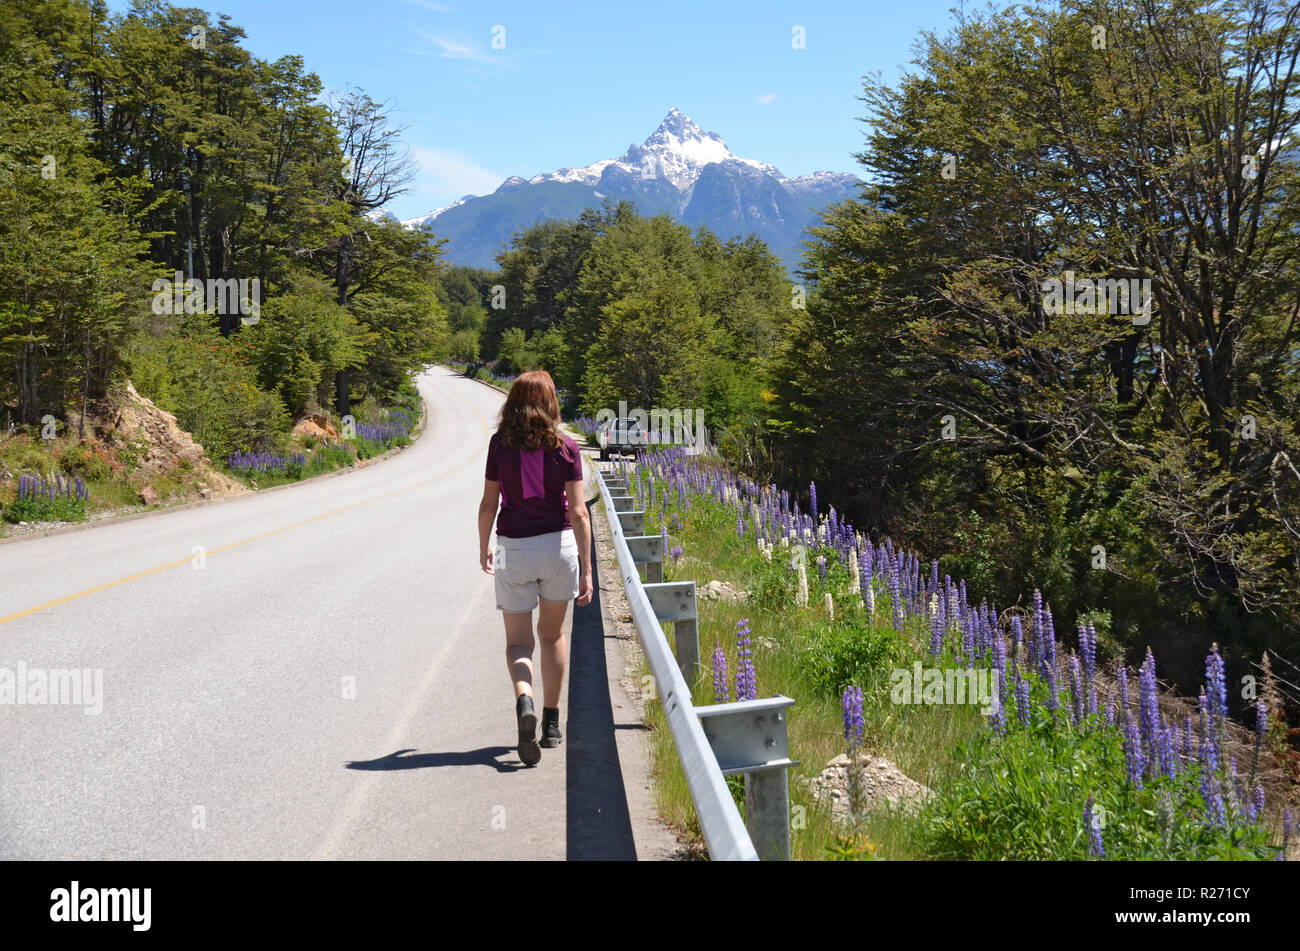 Driving the Carretera Austral, Quelat, Aysen, Chile - Stock Image